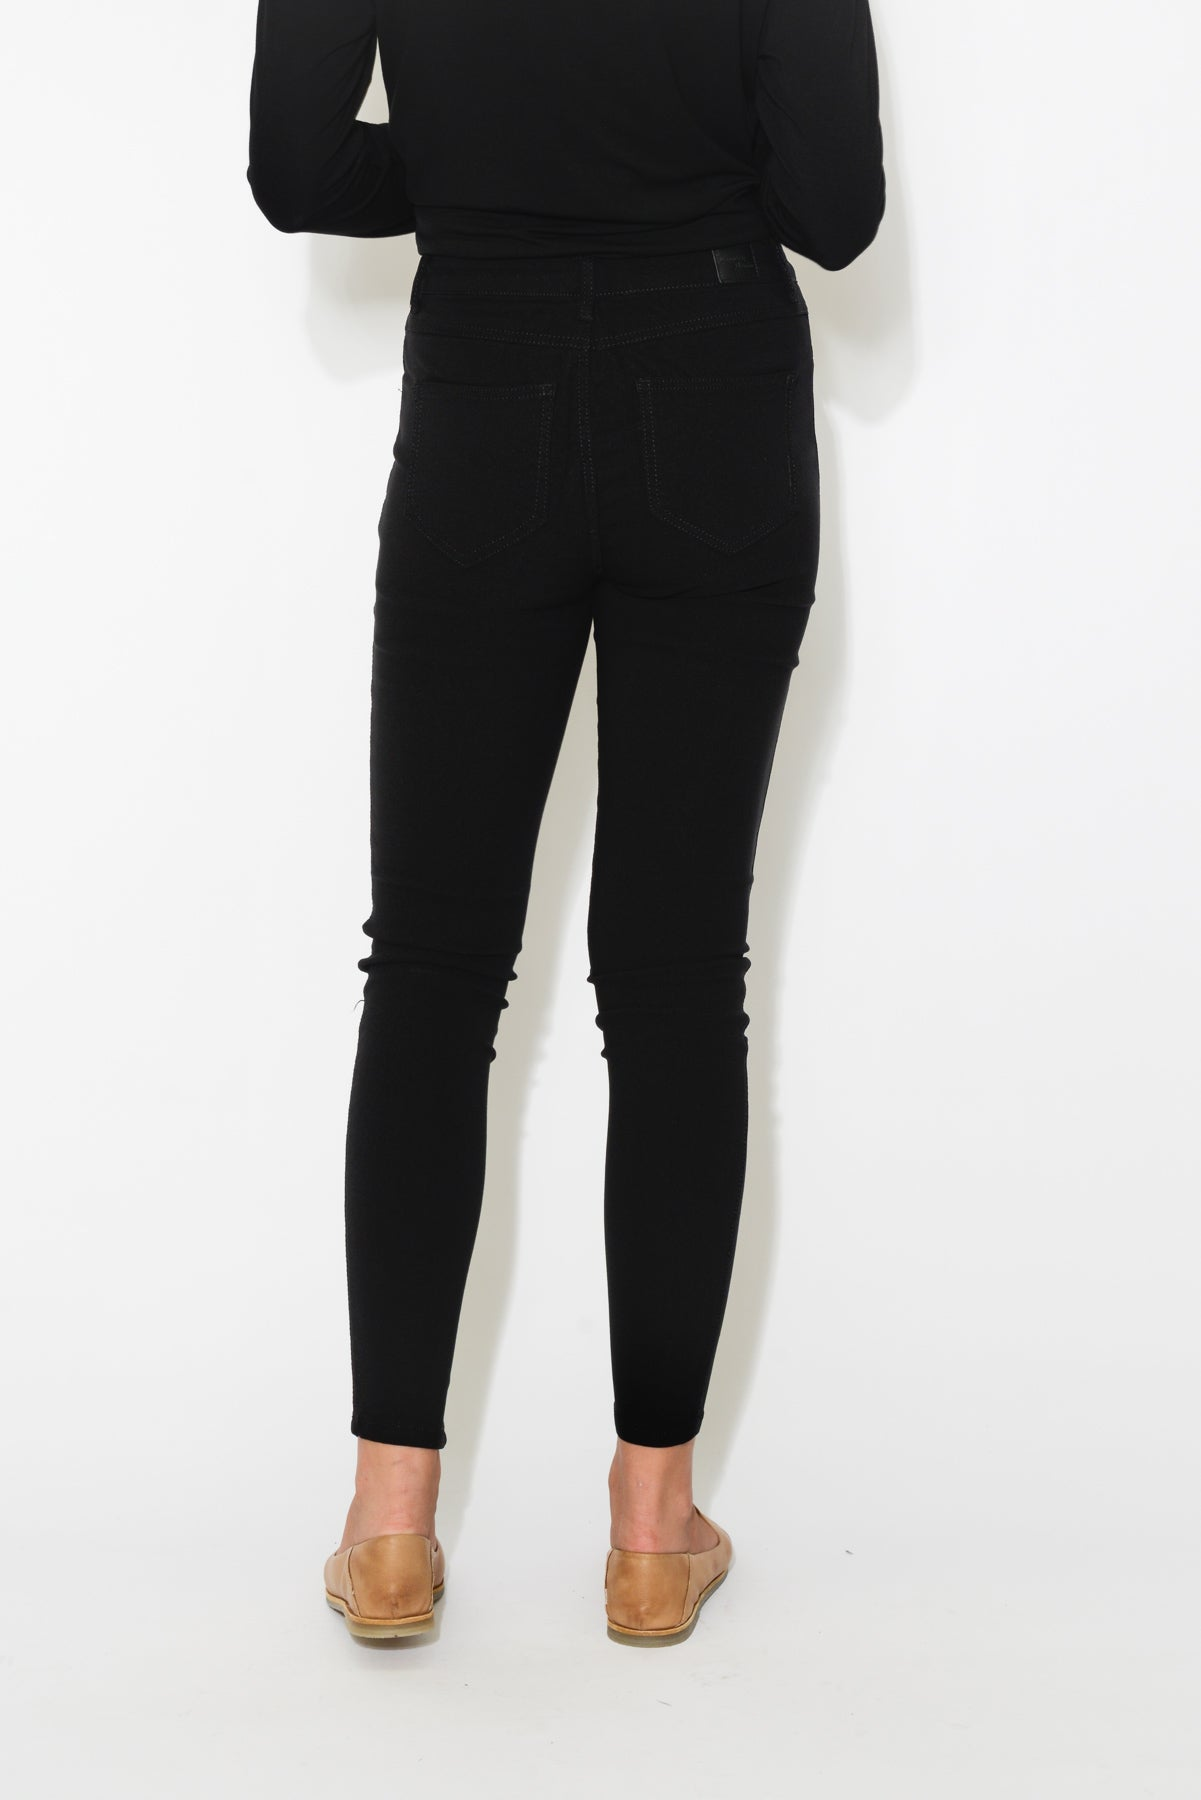 Black Super Stretch Jean - Blue Bungalow